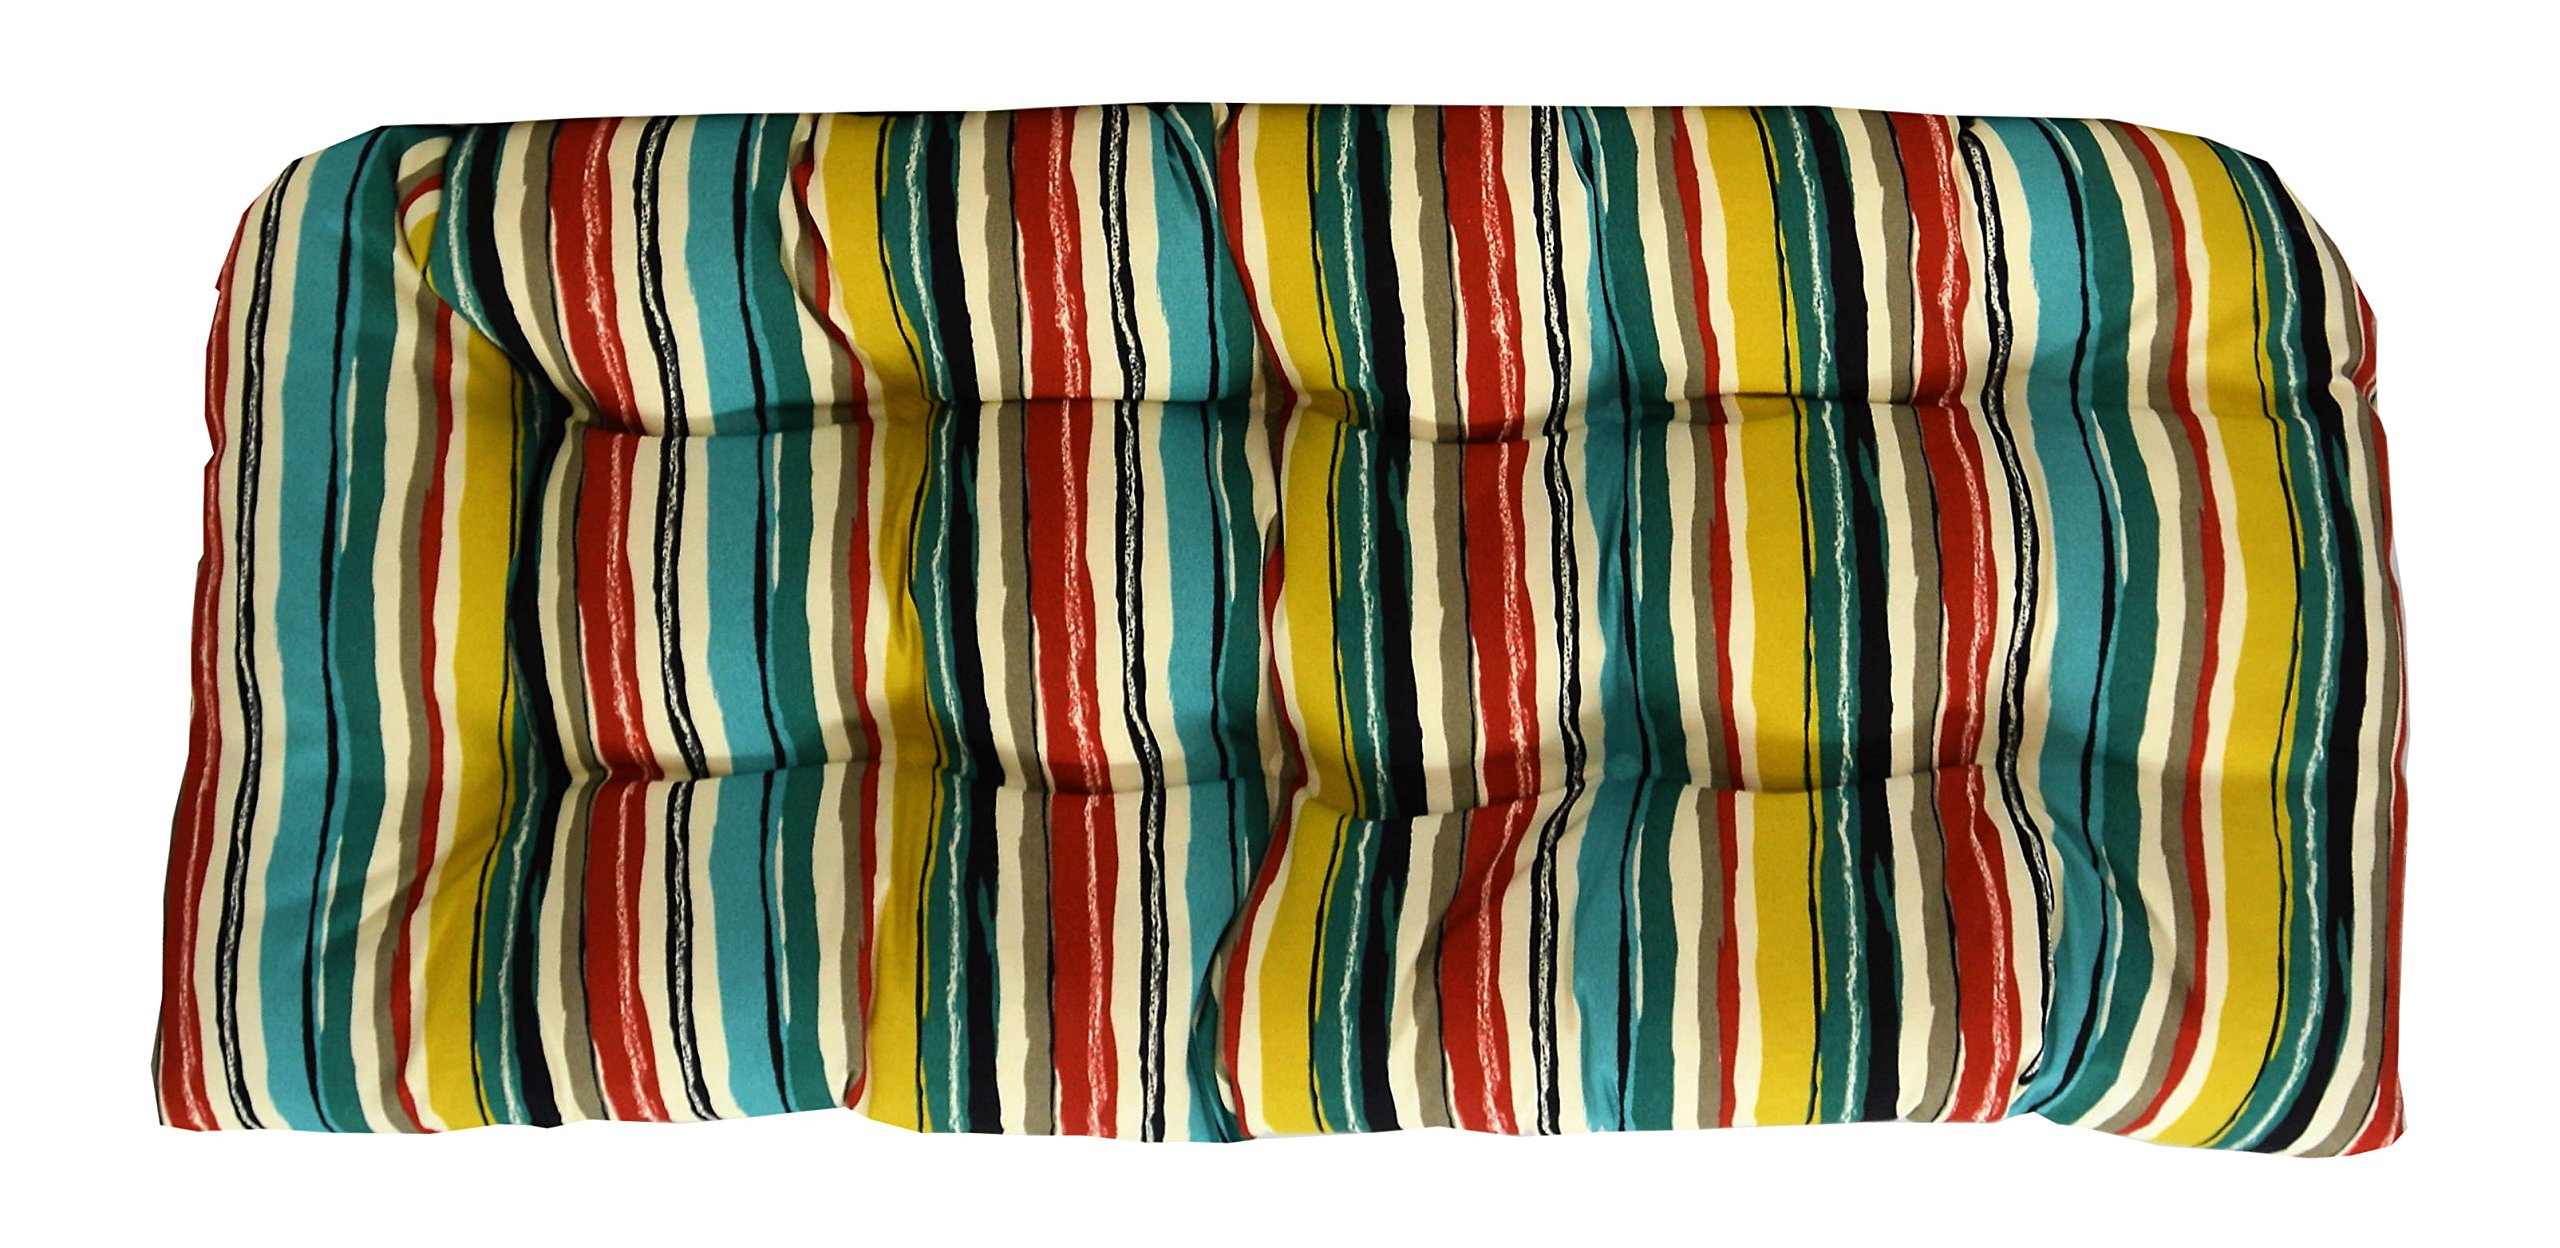 RSH Décor Indoor/Outdoor Wicker Chair Cushion Loveseat Sigmund Fresco Colorful Abstract Stripes Yellow Red Blue White Black